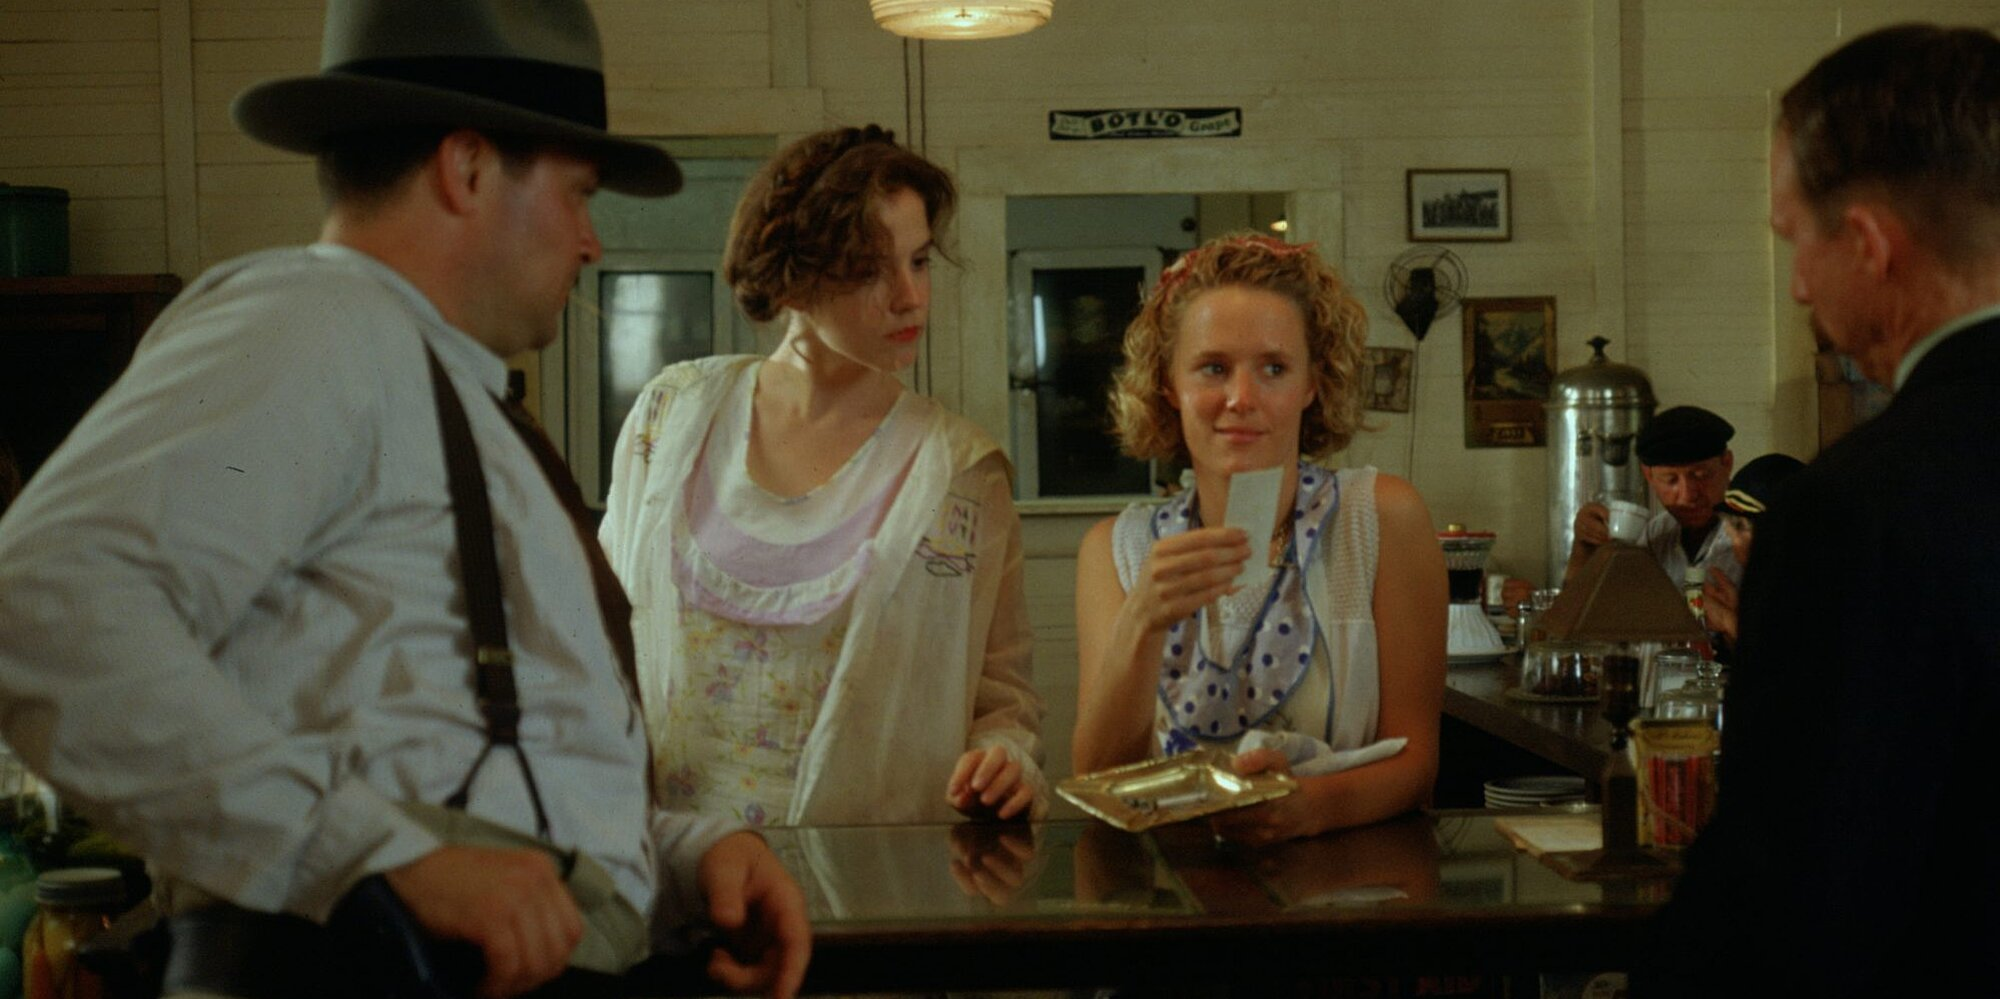 Mary Stuart Masterson Spills Secrets from the Set of Fried Green Tomatoes Thirty Years Later